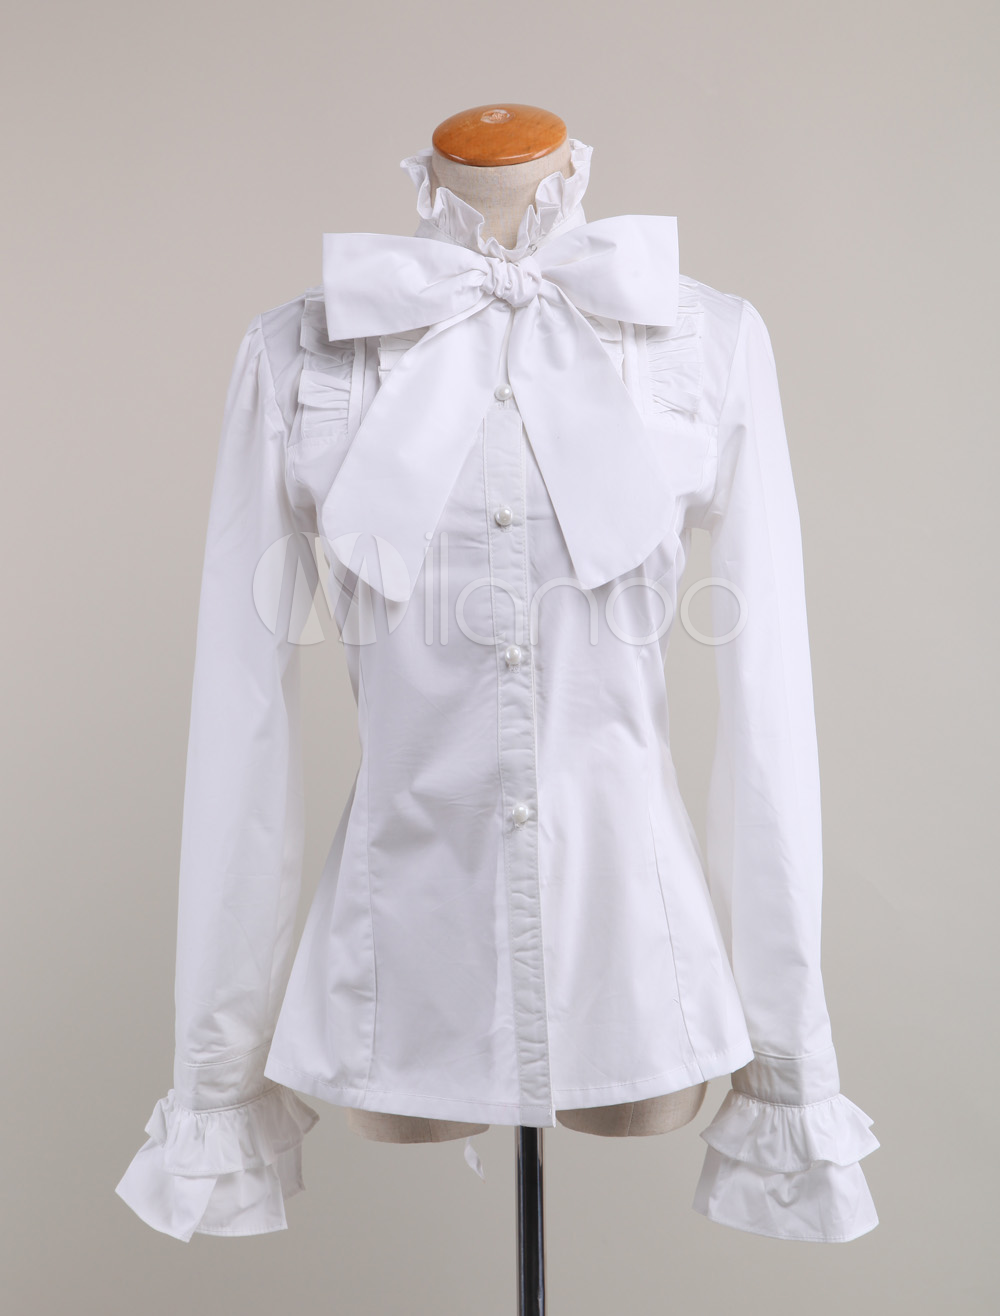 bec5a3f8c163c White Lolita Blouse Fragrant Series Infanta Chic Chiffon Shirt For Women.  This kind of white lolita blouse features its bow decorated on the front  collar.